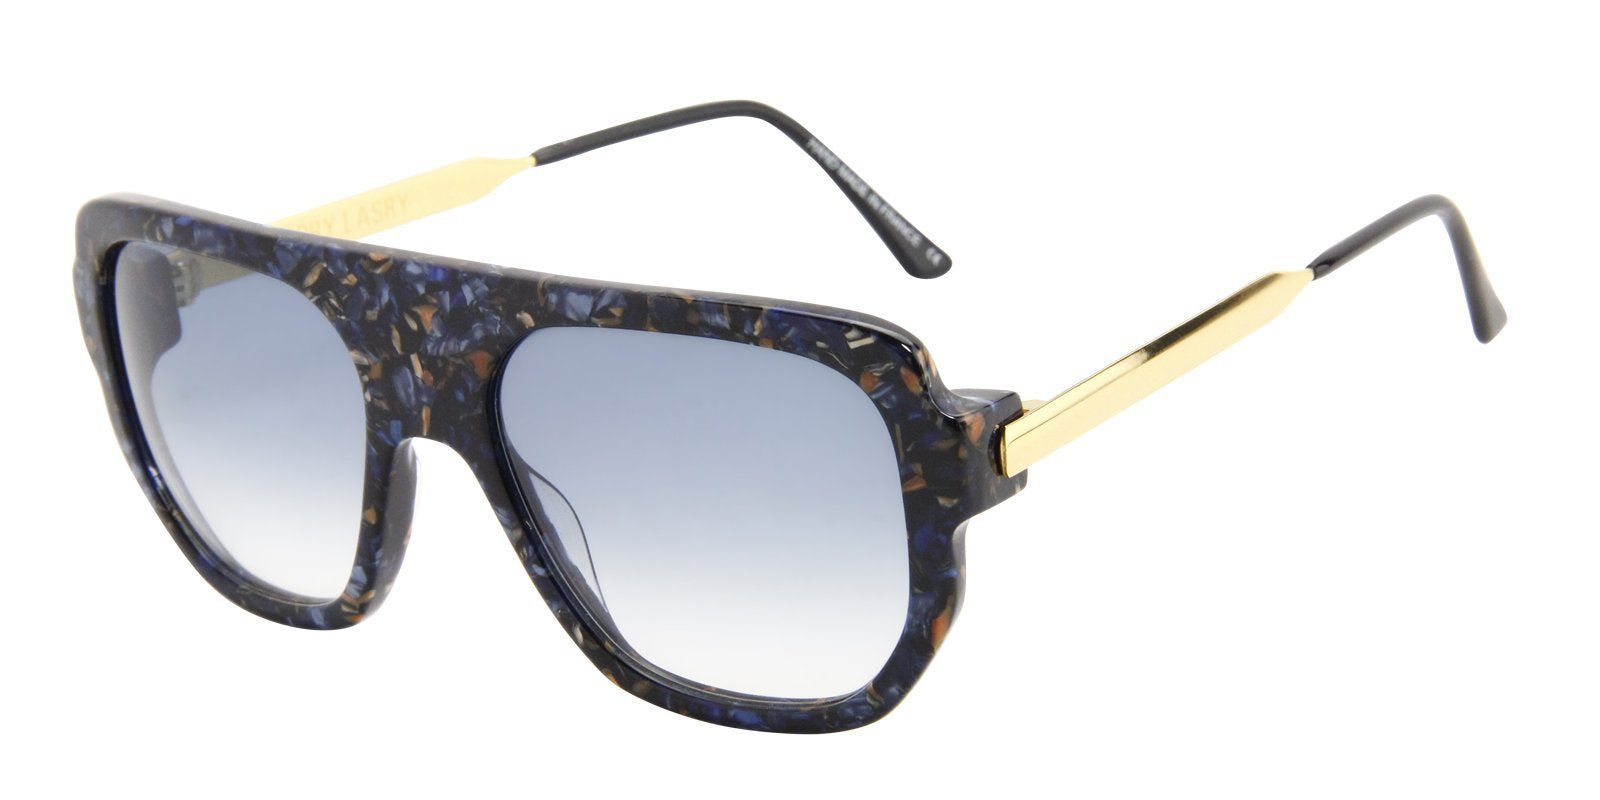 Thierry Lasry - Misoginy Black/Blue Rectangular Men, Women Sunglasses - 54mm-Sunglasses-Designer Eyes